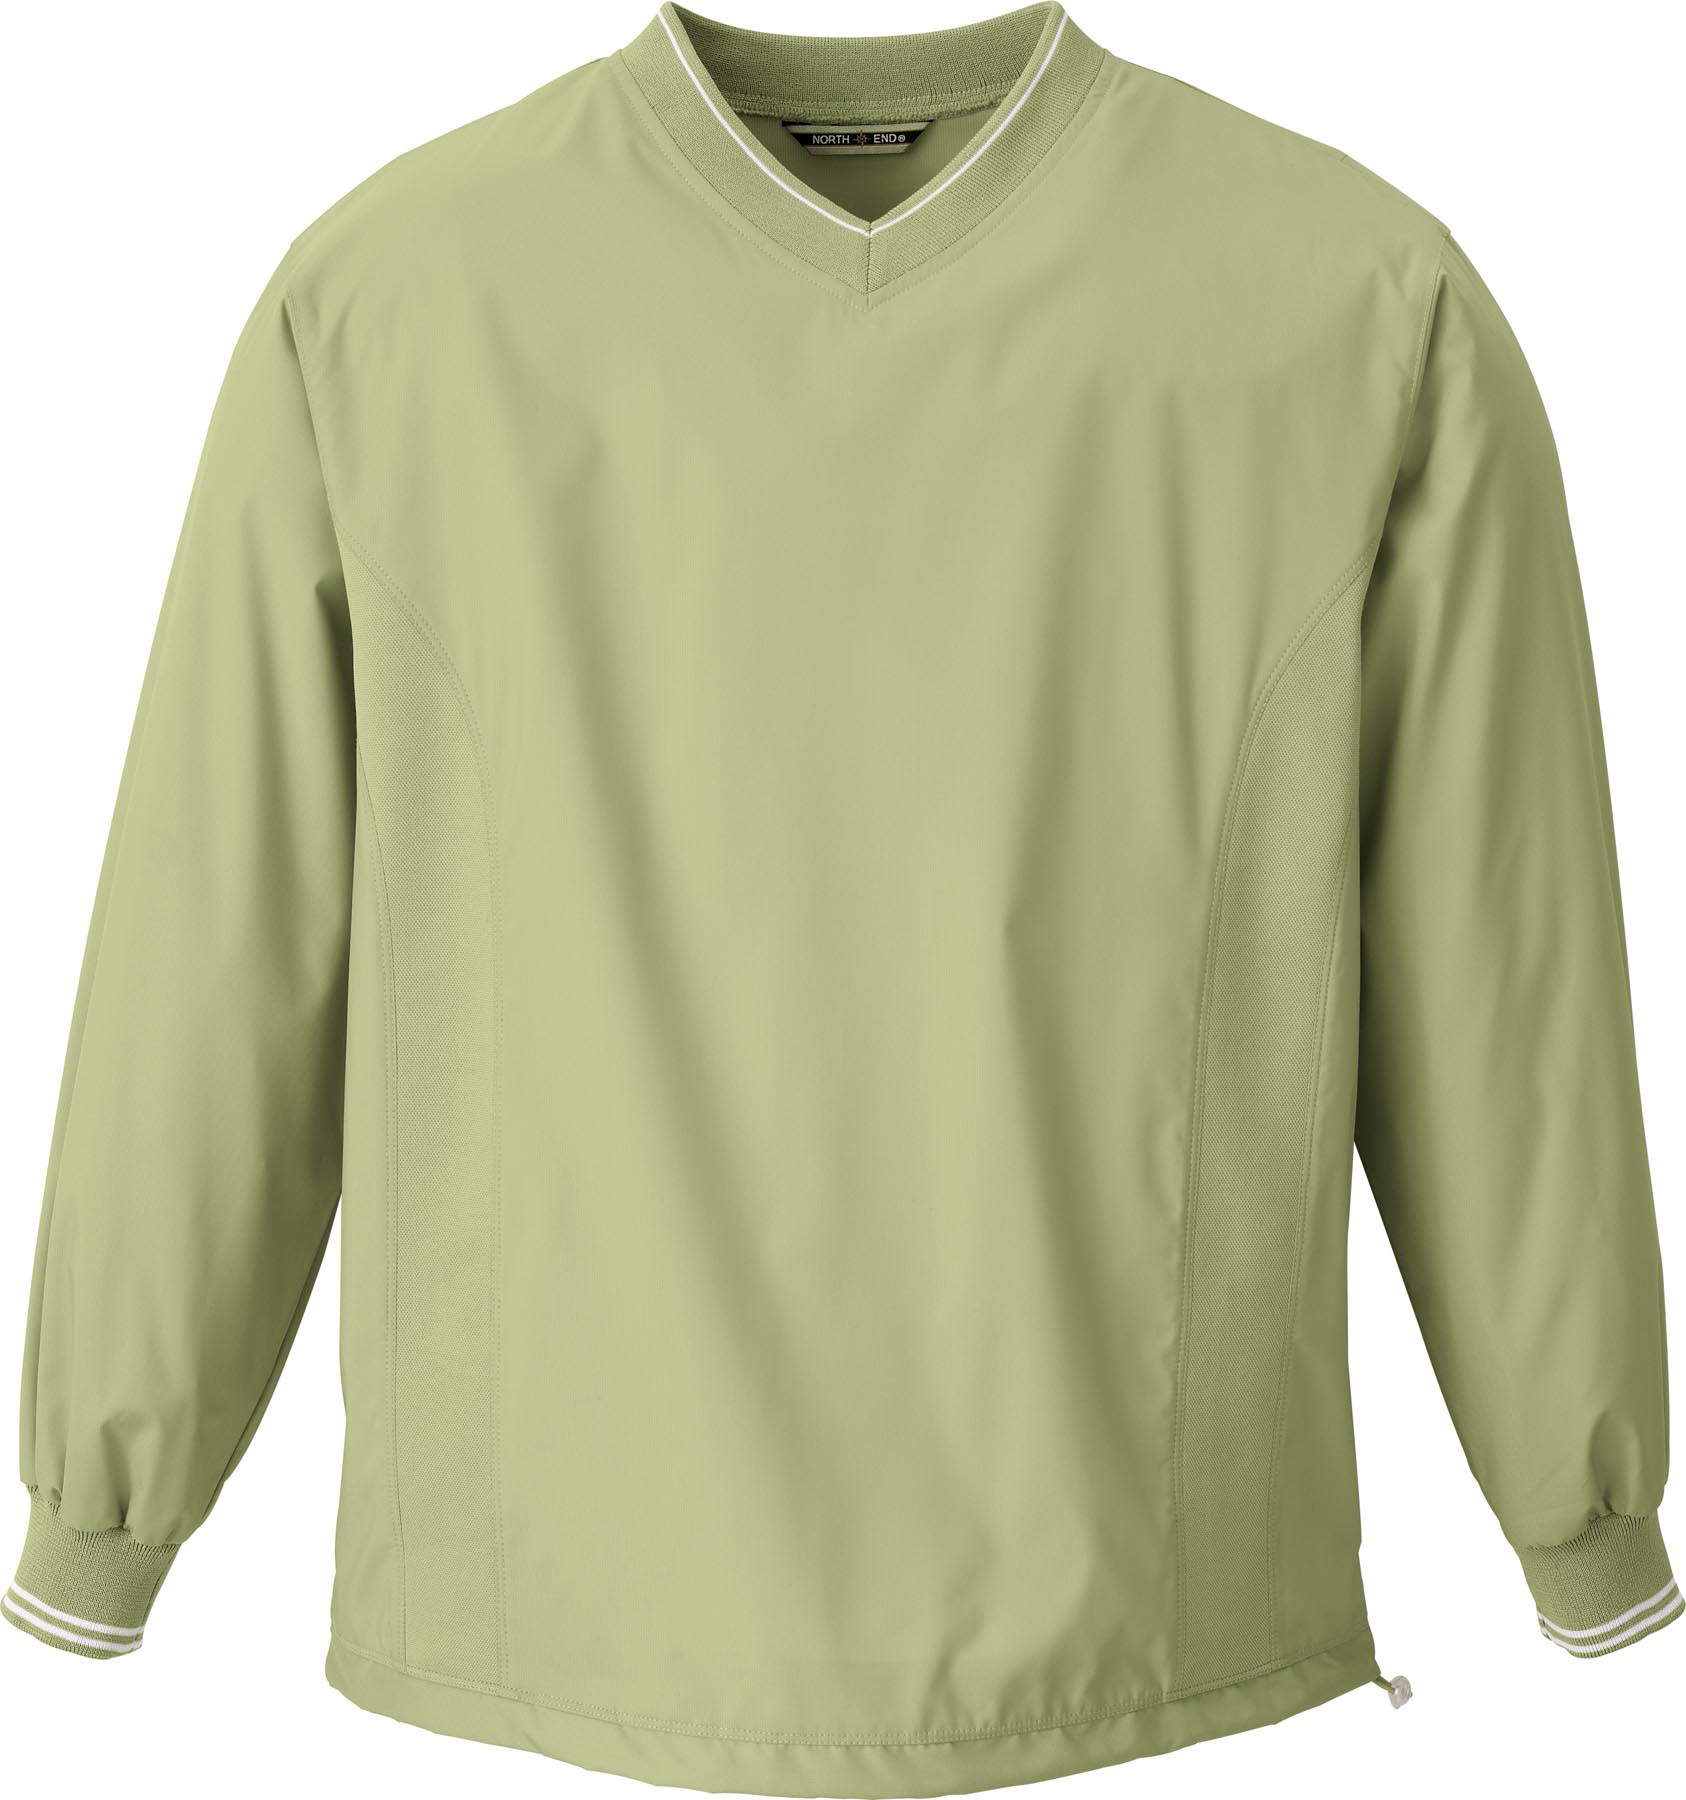 Ash City Windshirts 88132 - Men's V-Neck Windshirt